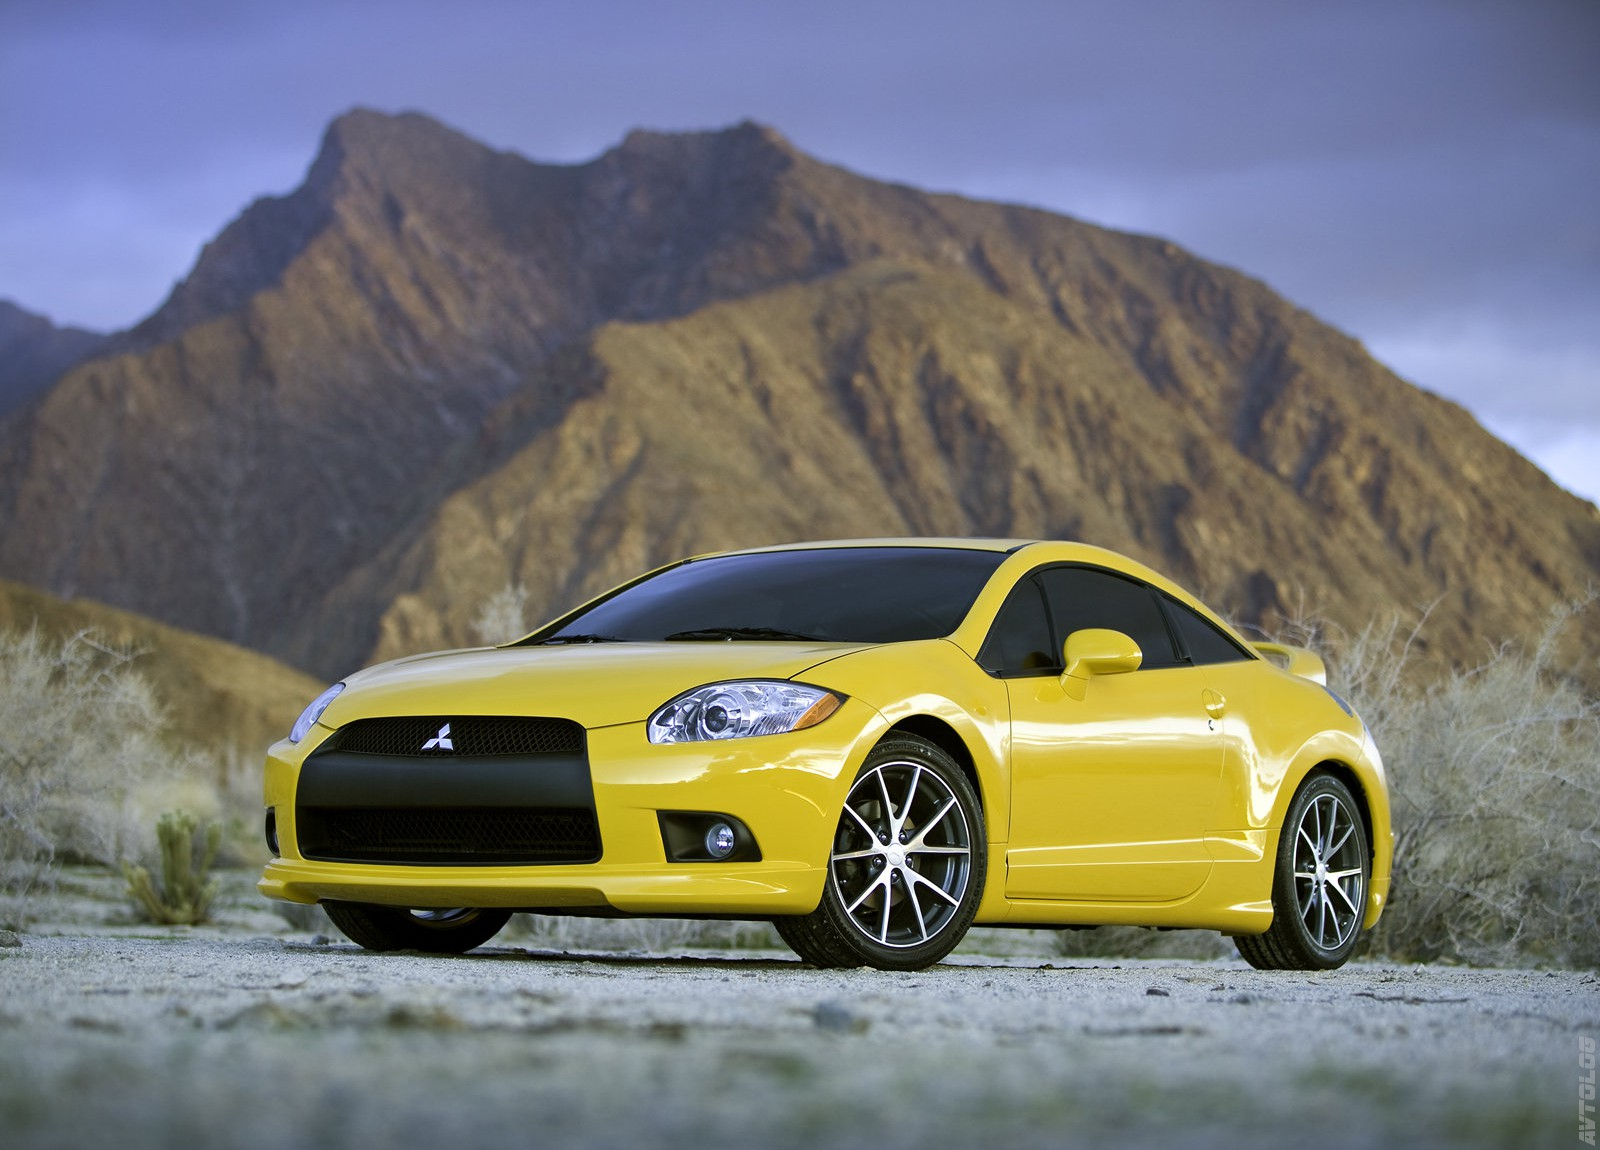 2017 Mitsubishi Eclipse Gt Car Photos Catalog 2019